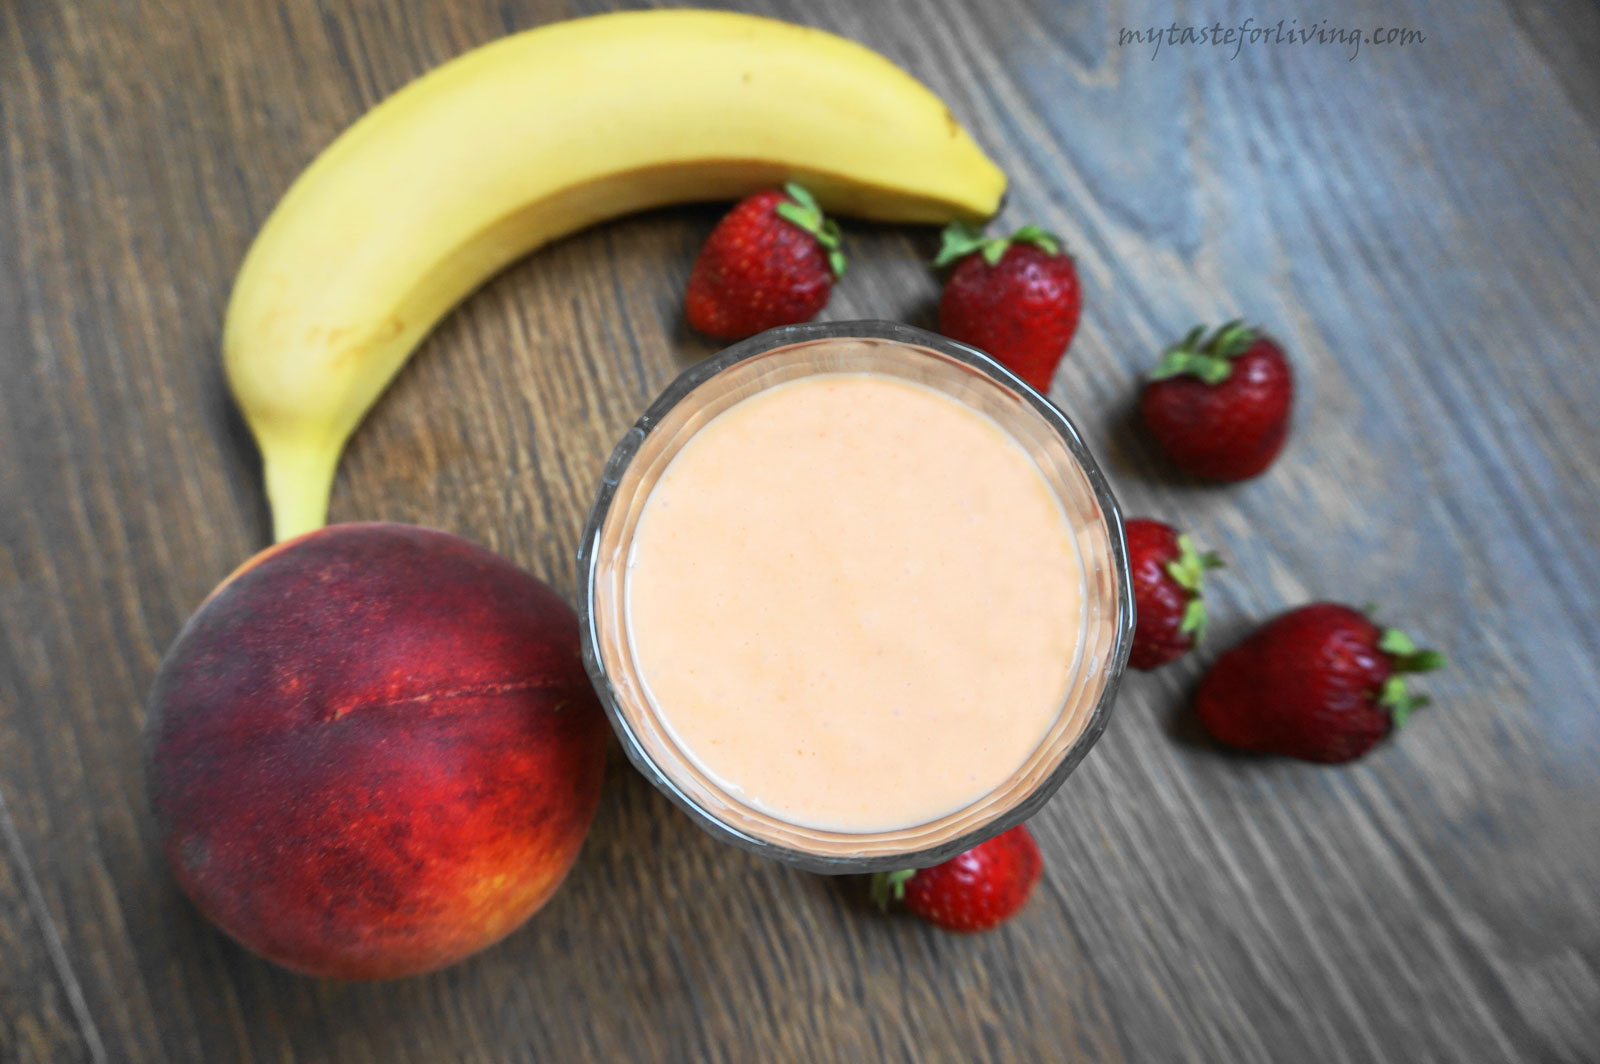 Delicious and fresh smoothie prepared with peach, banana, strawberries, honey, yogurt and coconut oil.